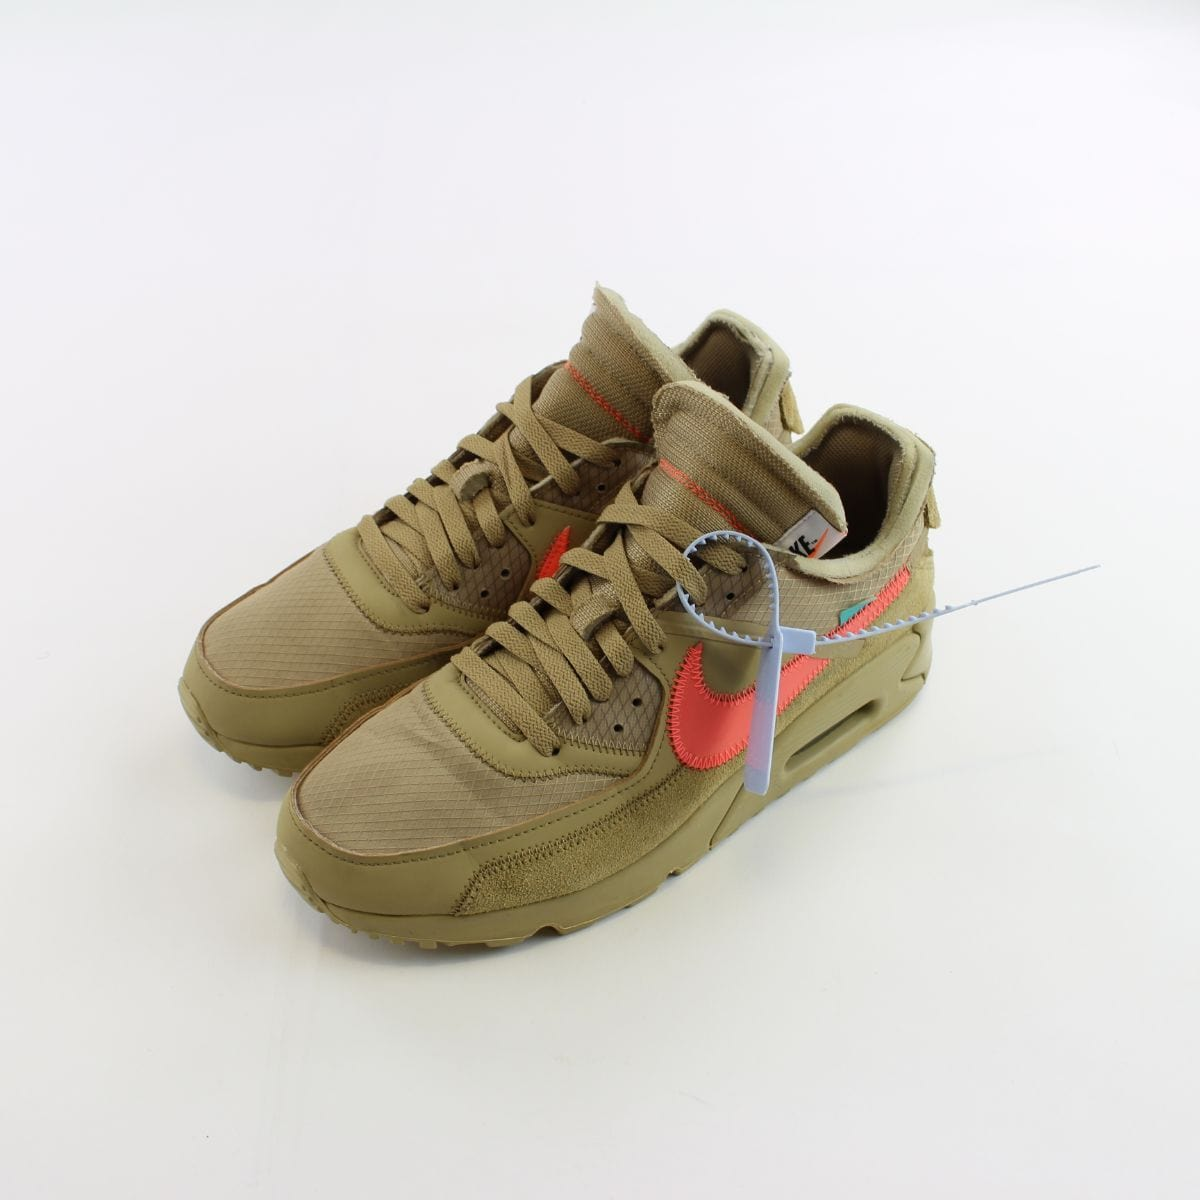 Nike x Off white AM90 Desert Ores